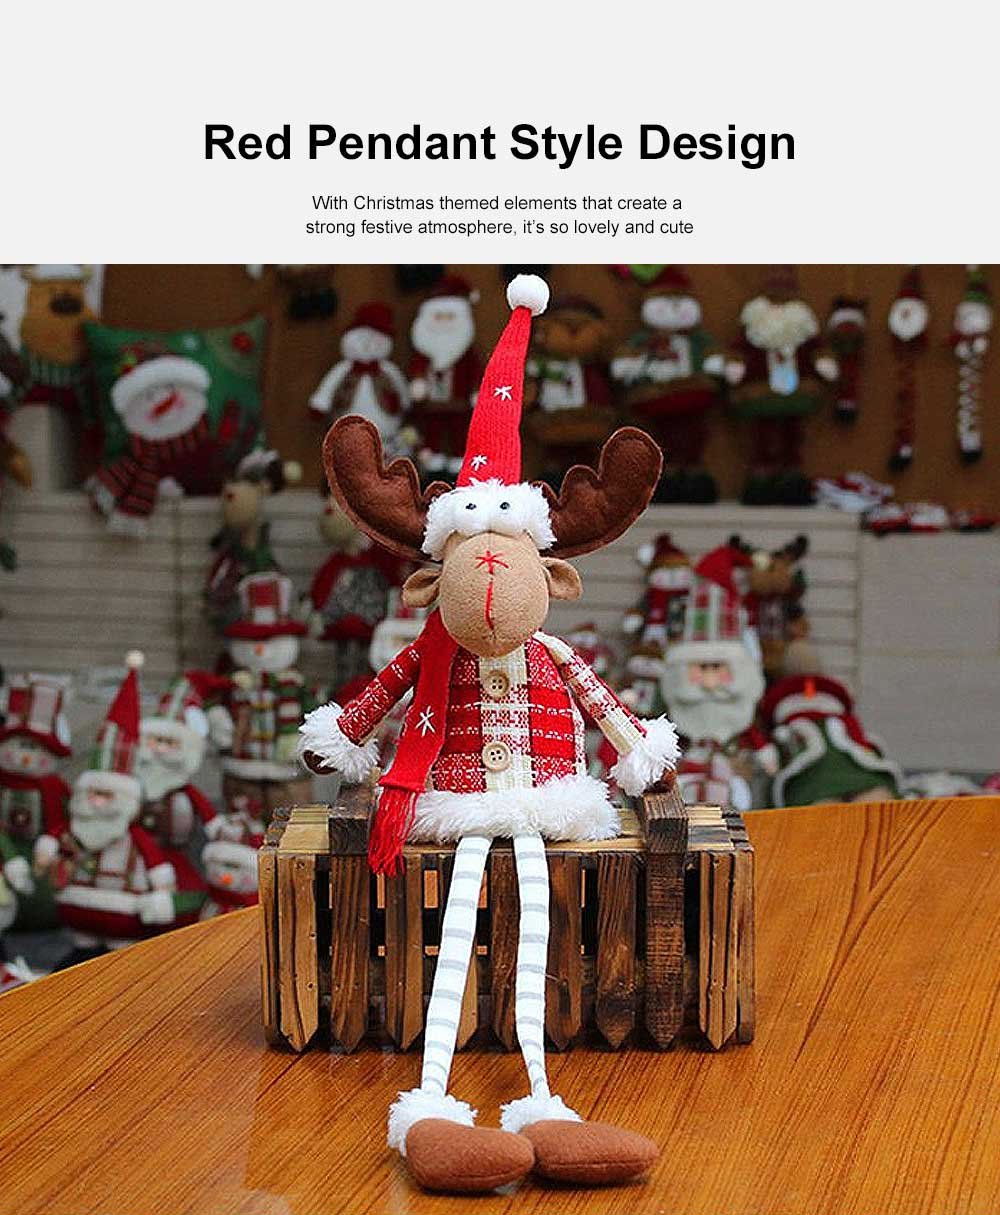 Christmas Decorations Elk Ornaments Christmas Fabric Sitting Posture Dolls Christmas Creative Toys 1